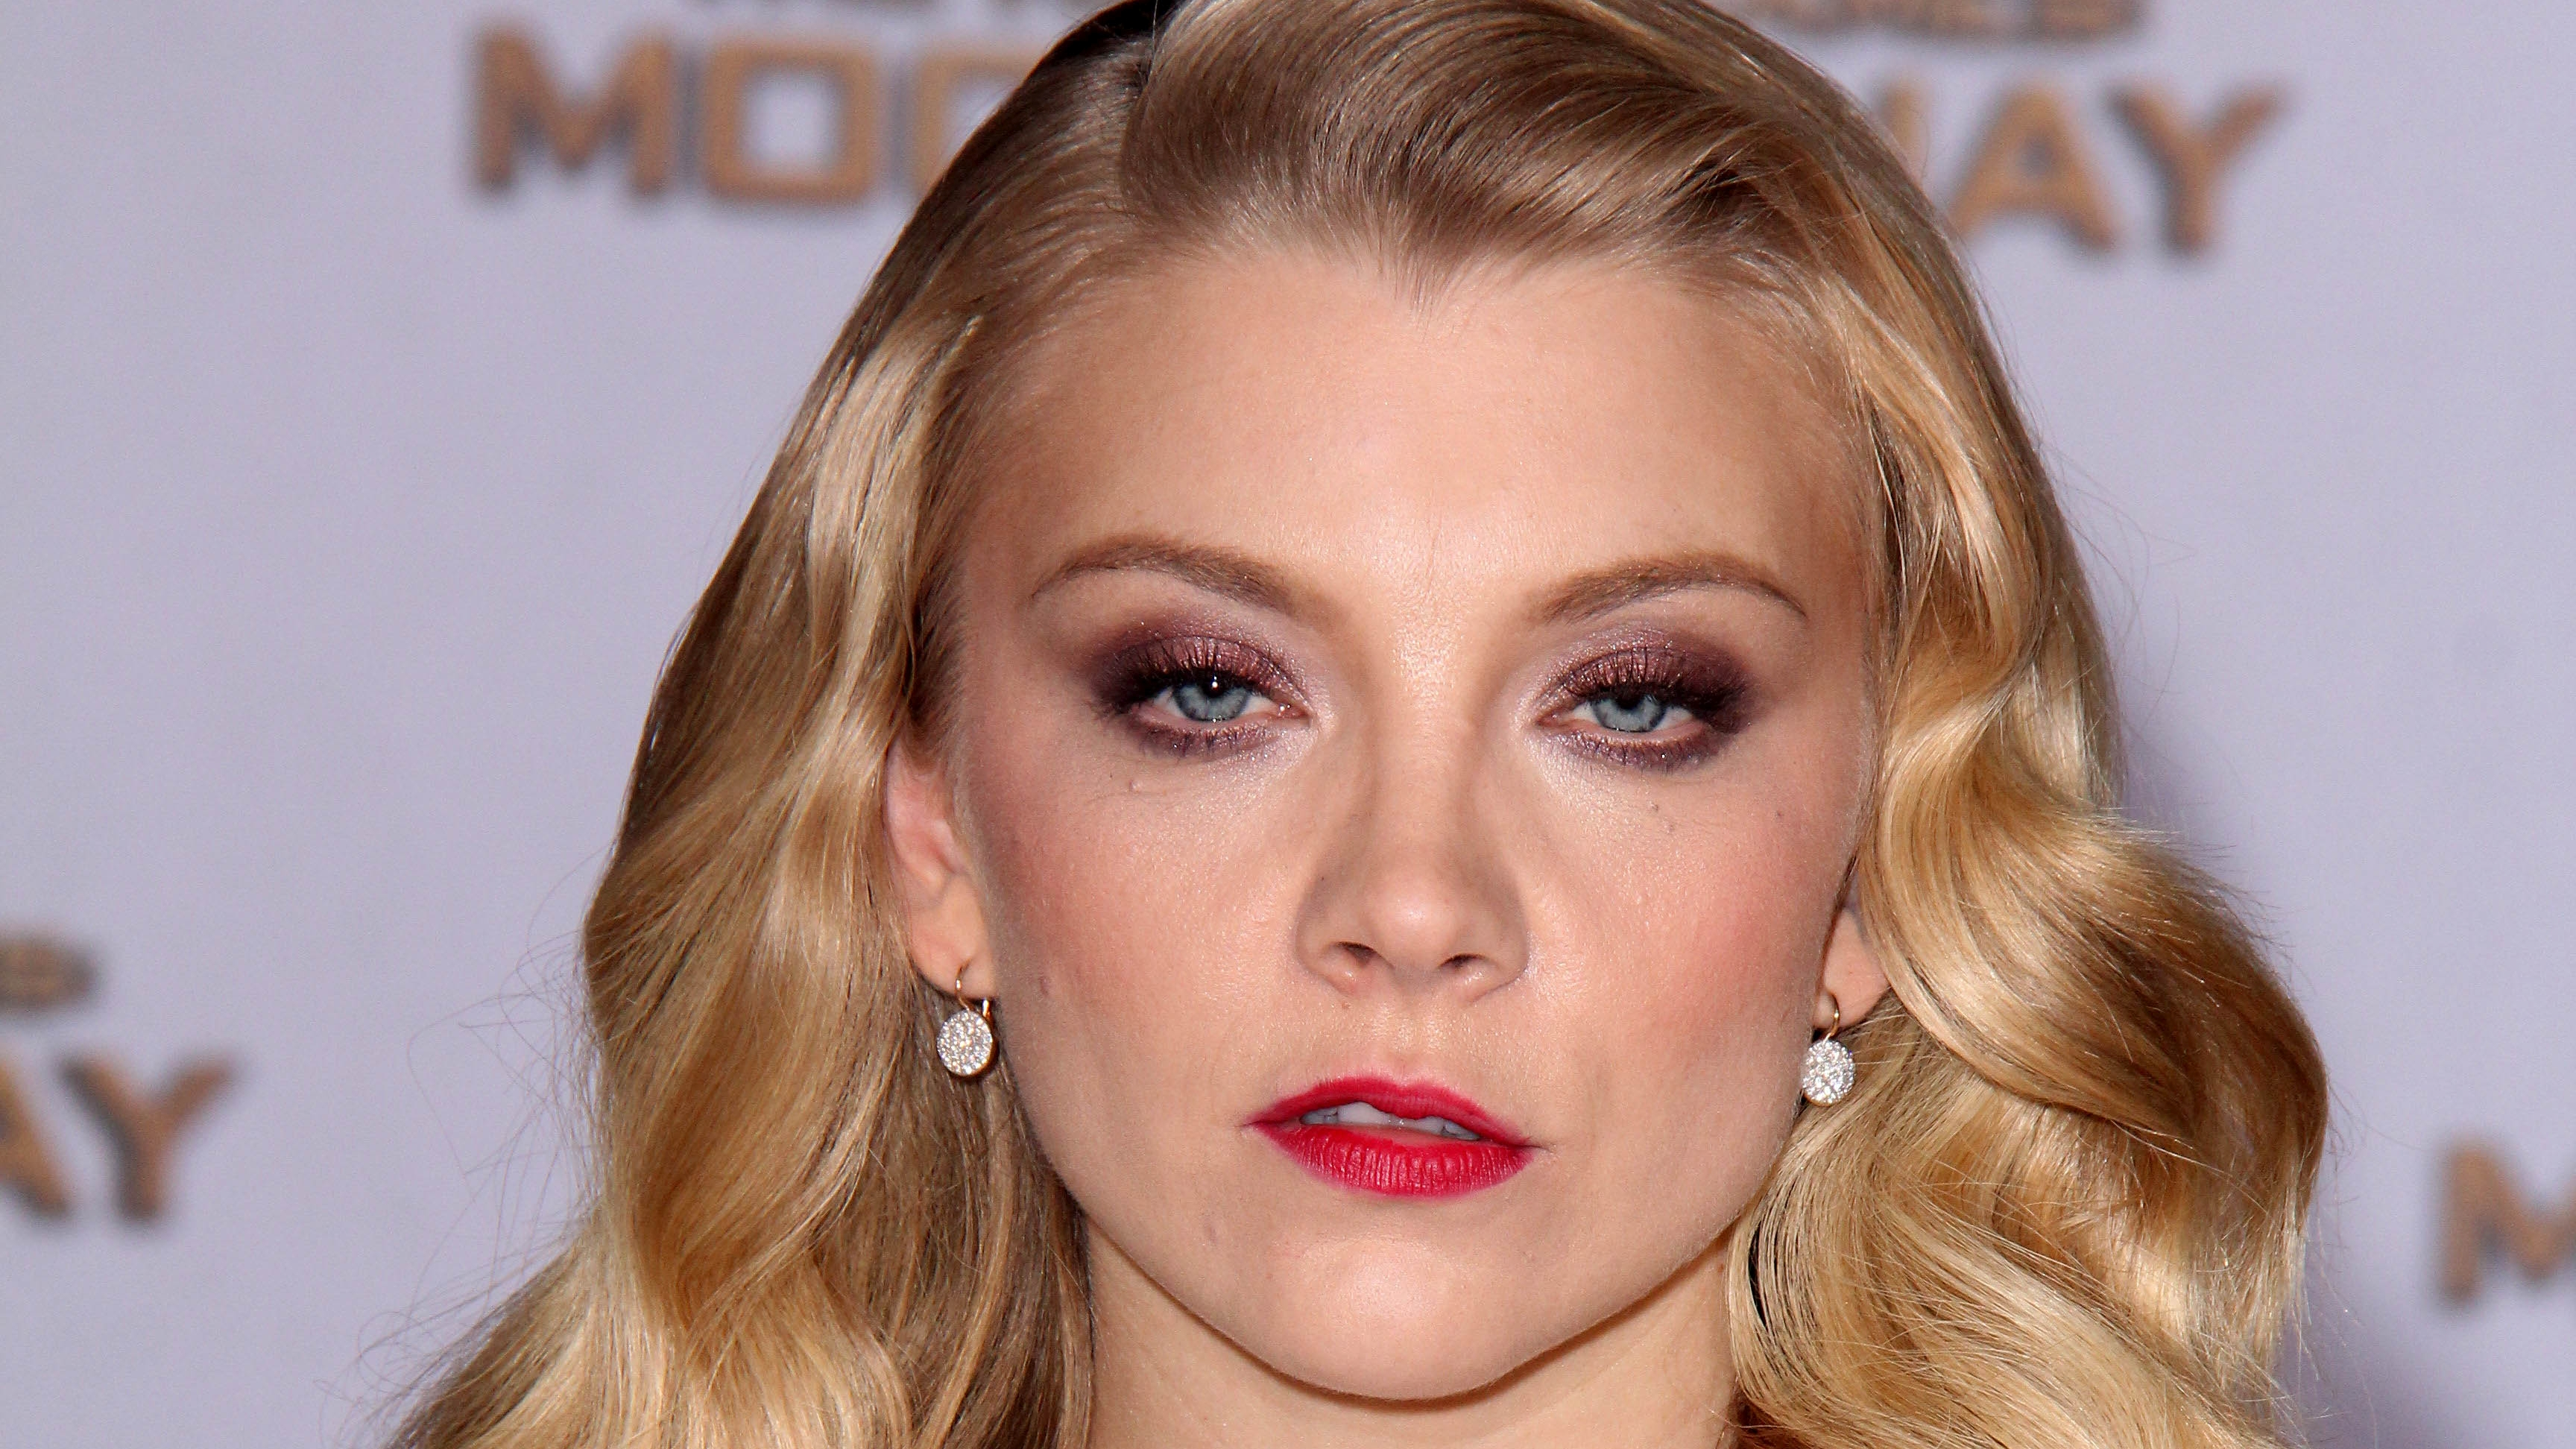 Natalie Dormer Wallpapers, Pictures, Images